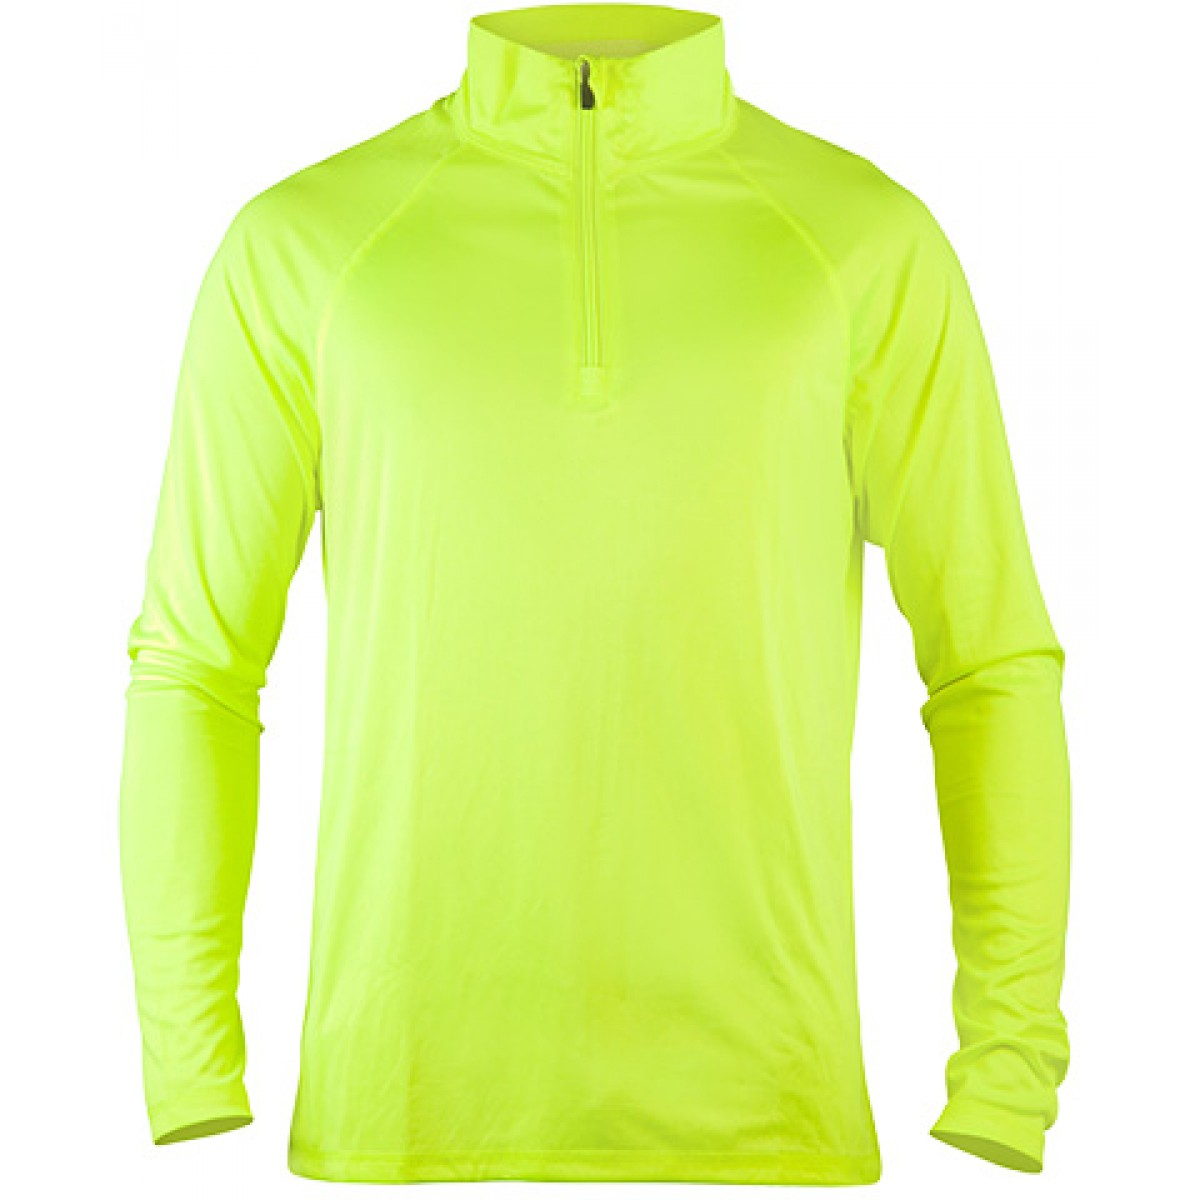 Men's Quarter-Zip Lightweight Pullover-Neon Green-2XL